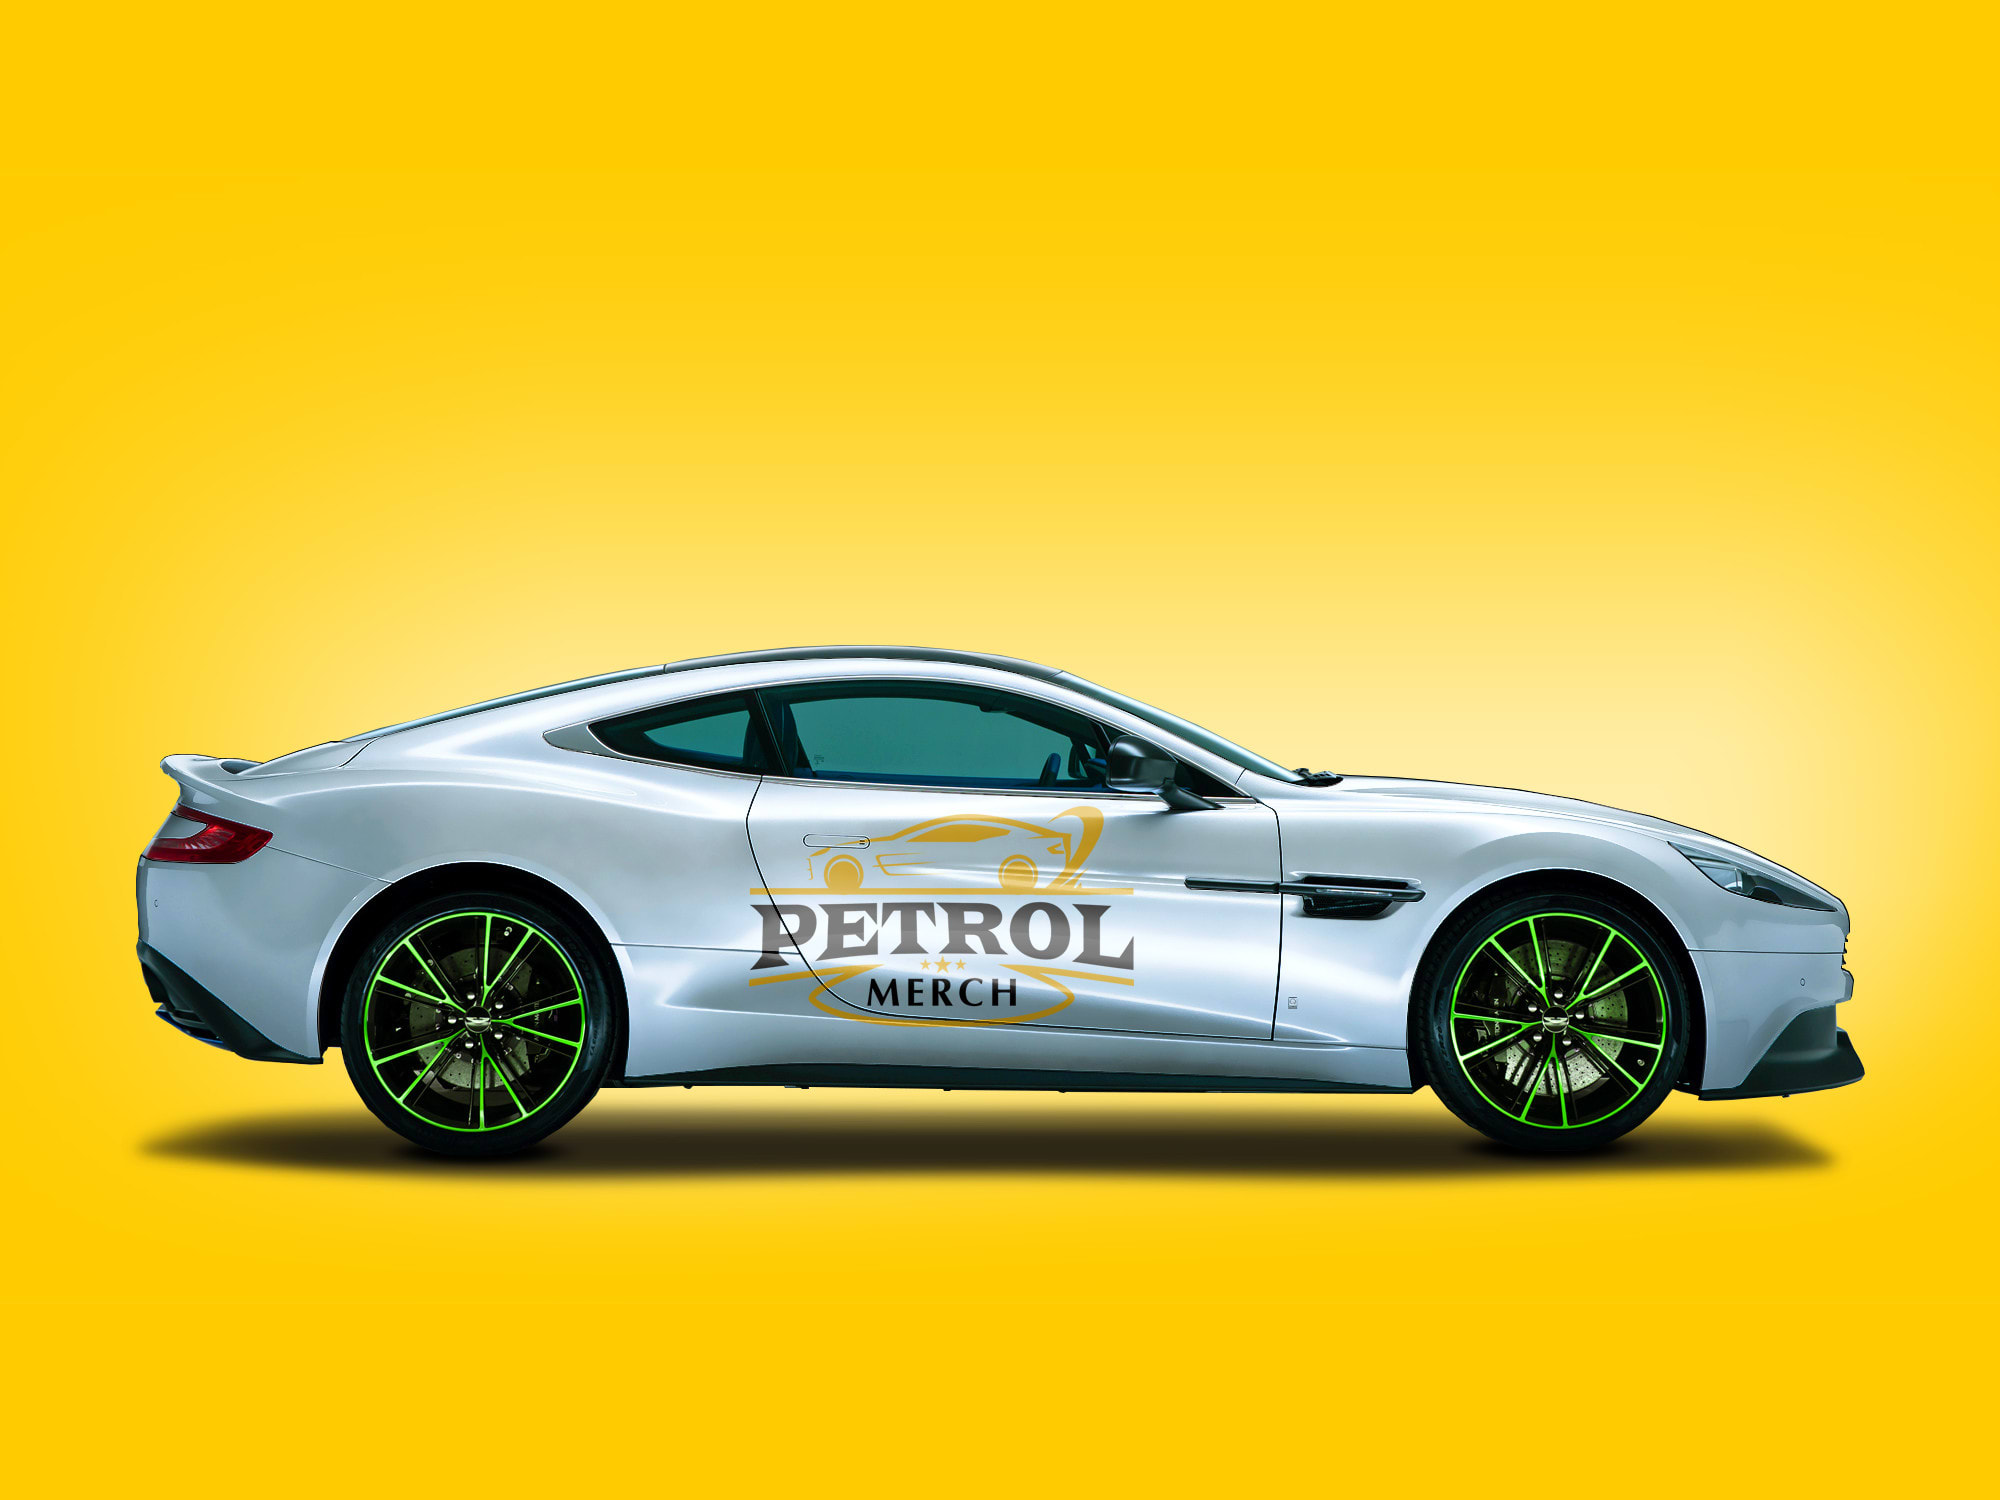 Make A Mockup Of Your Logo On Aston Martin By Crisss91 Fiverr